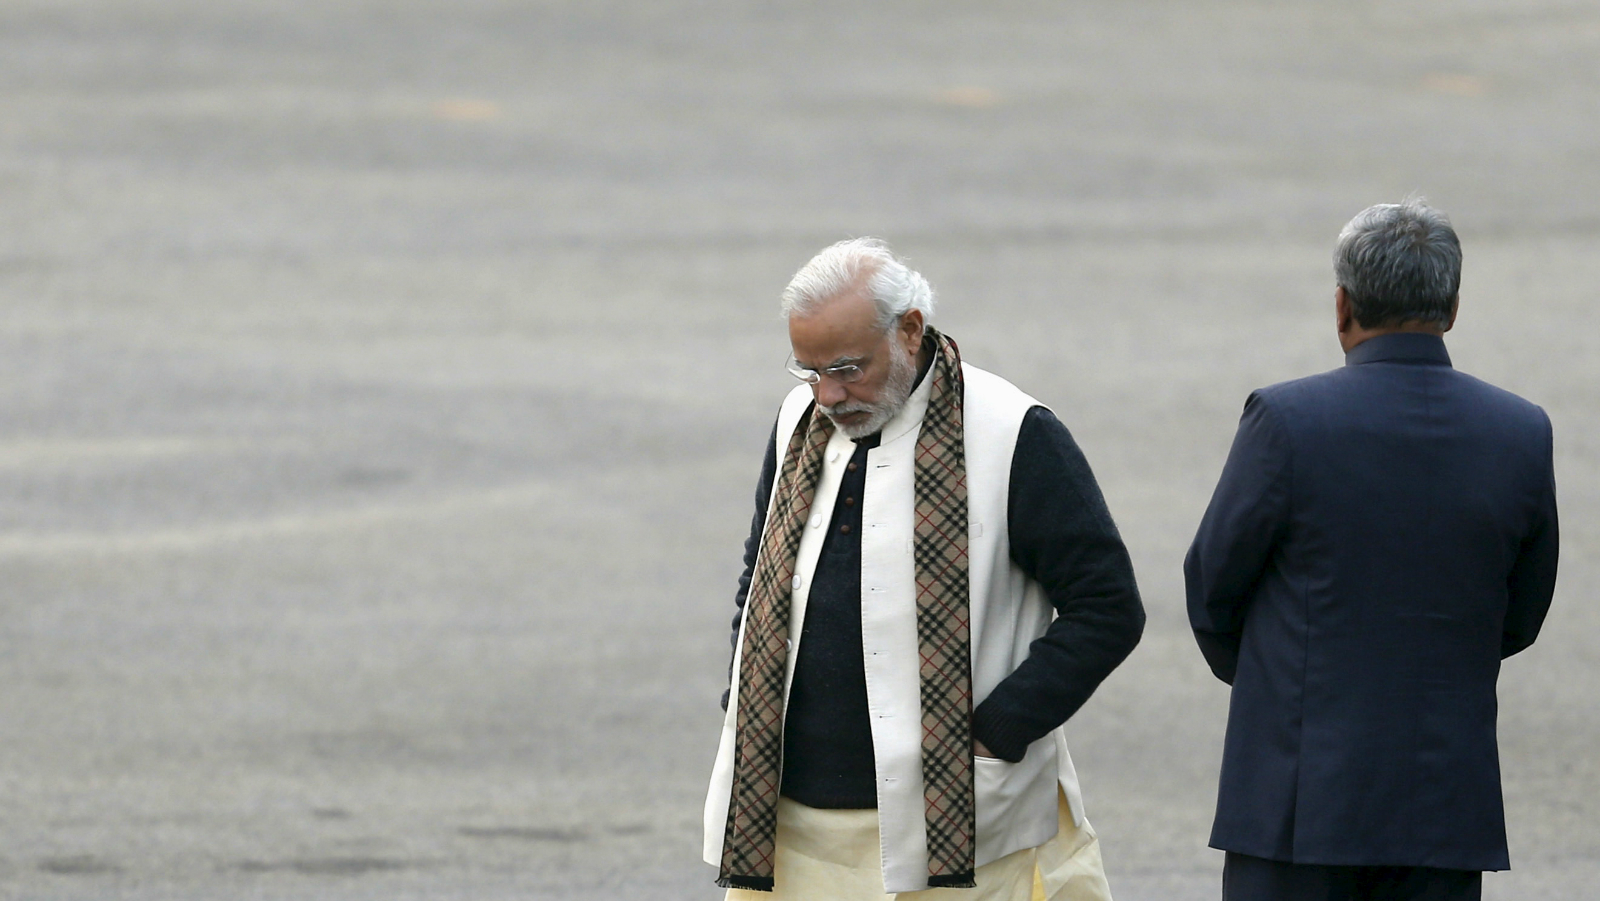 """India's Prime Minister Narendra Modi (L) and Defence Minister Manohar Parrikar wait for the arrival of President Pranab Mukherjee before the start of the """"Beating the Retreat"""" ceremony in New Delhi, India, January 29, 2016. The ceremony symbolises retreat after a day on the battlefield, and marks the official end of the Indian Republic Day celebrations."""